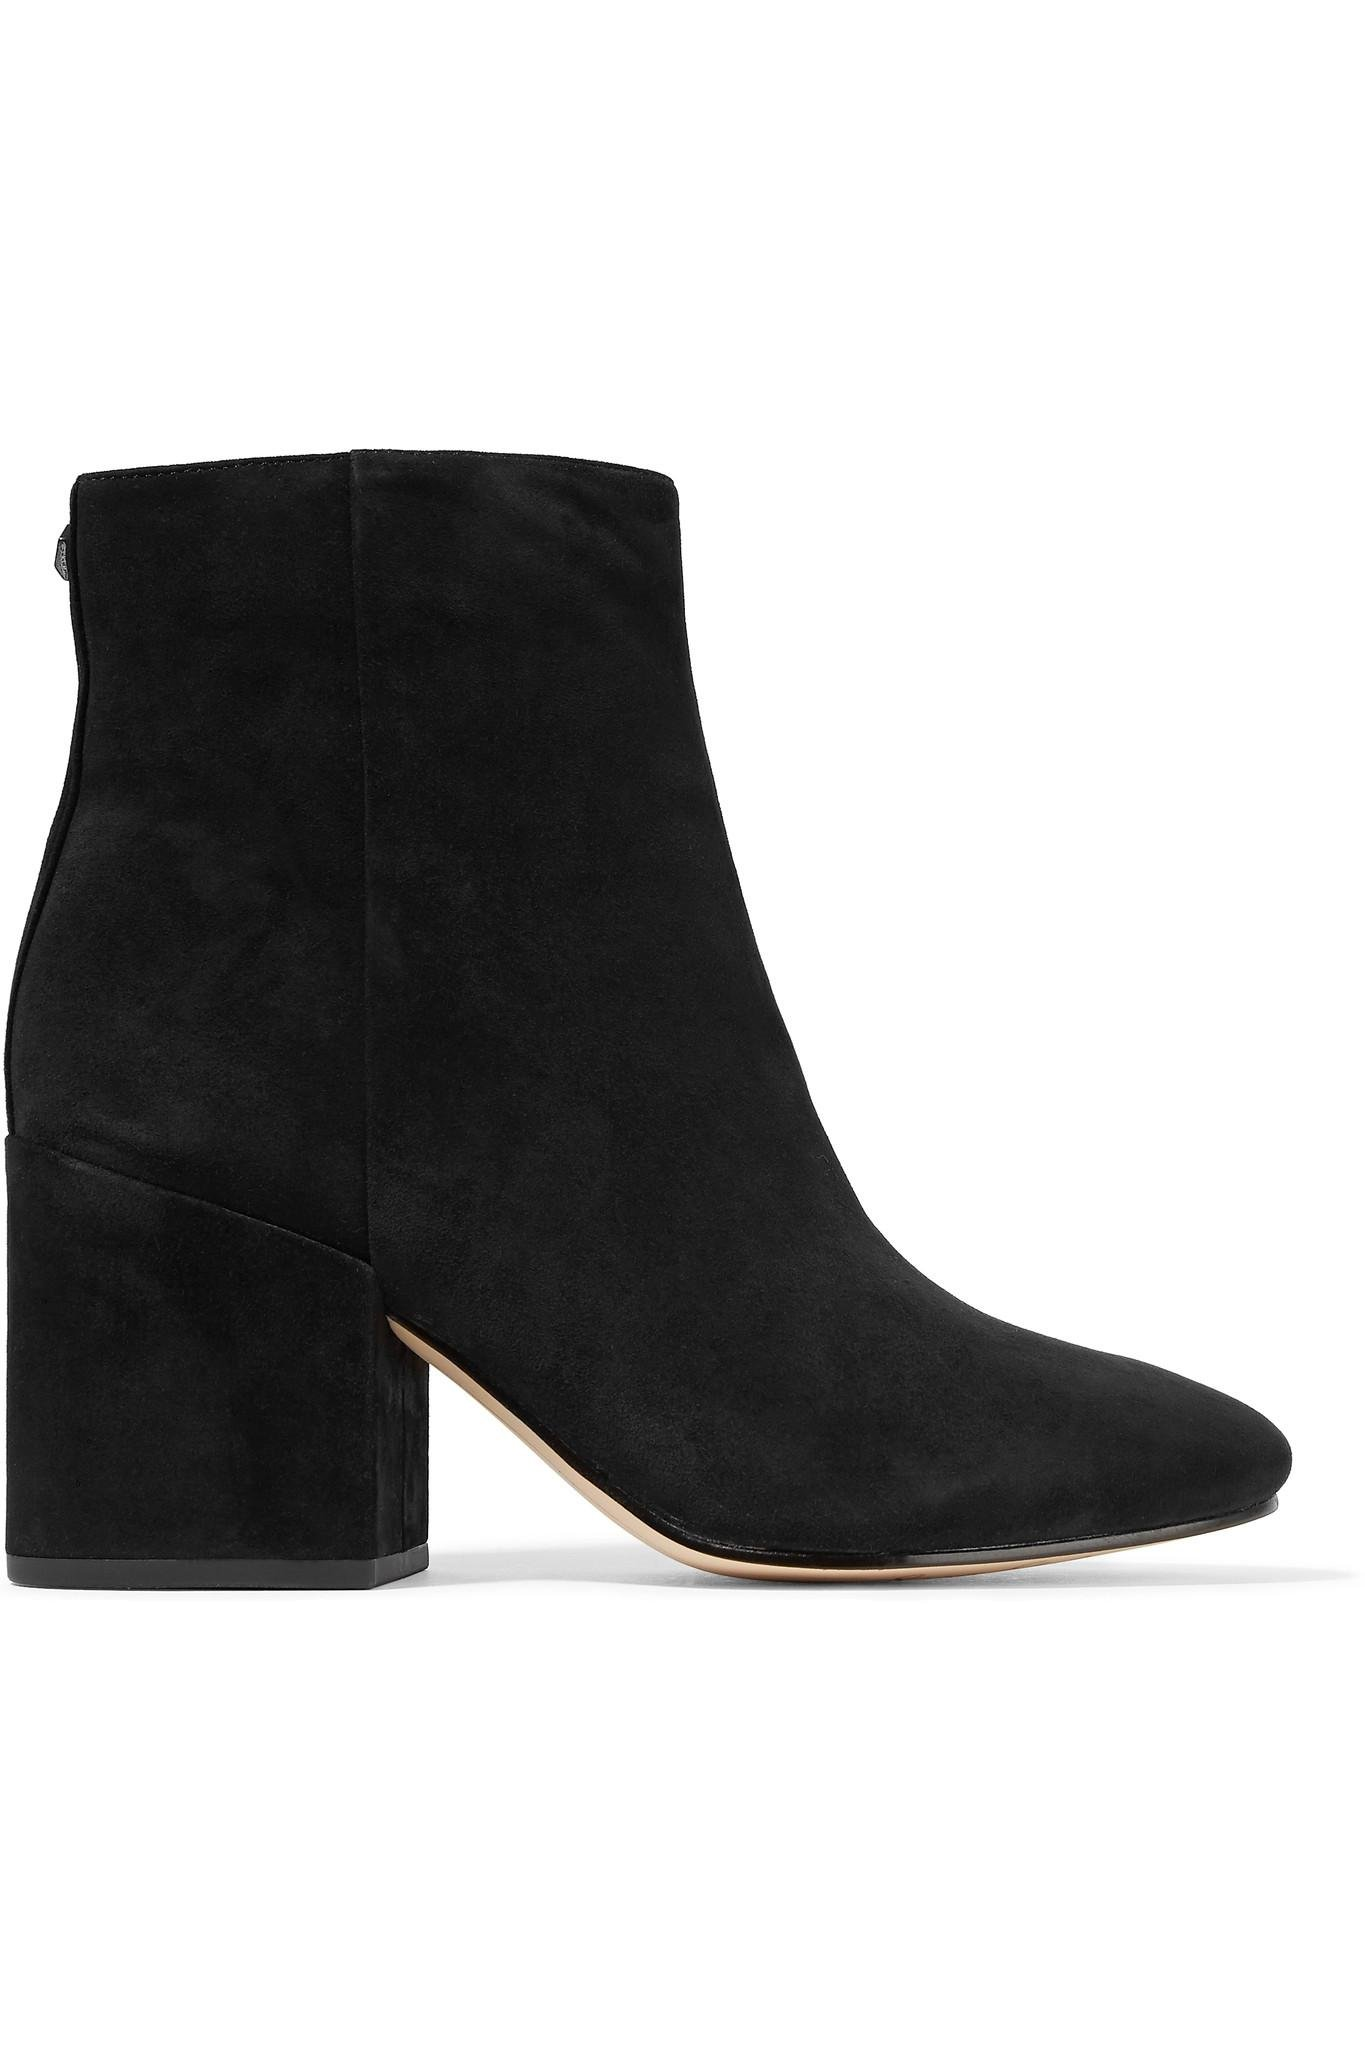 ce91bf5e6b2a4 Sam Edelman Taye Suede Ankle Boots in Black - Lyst